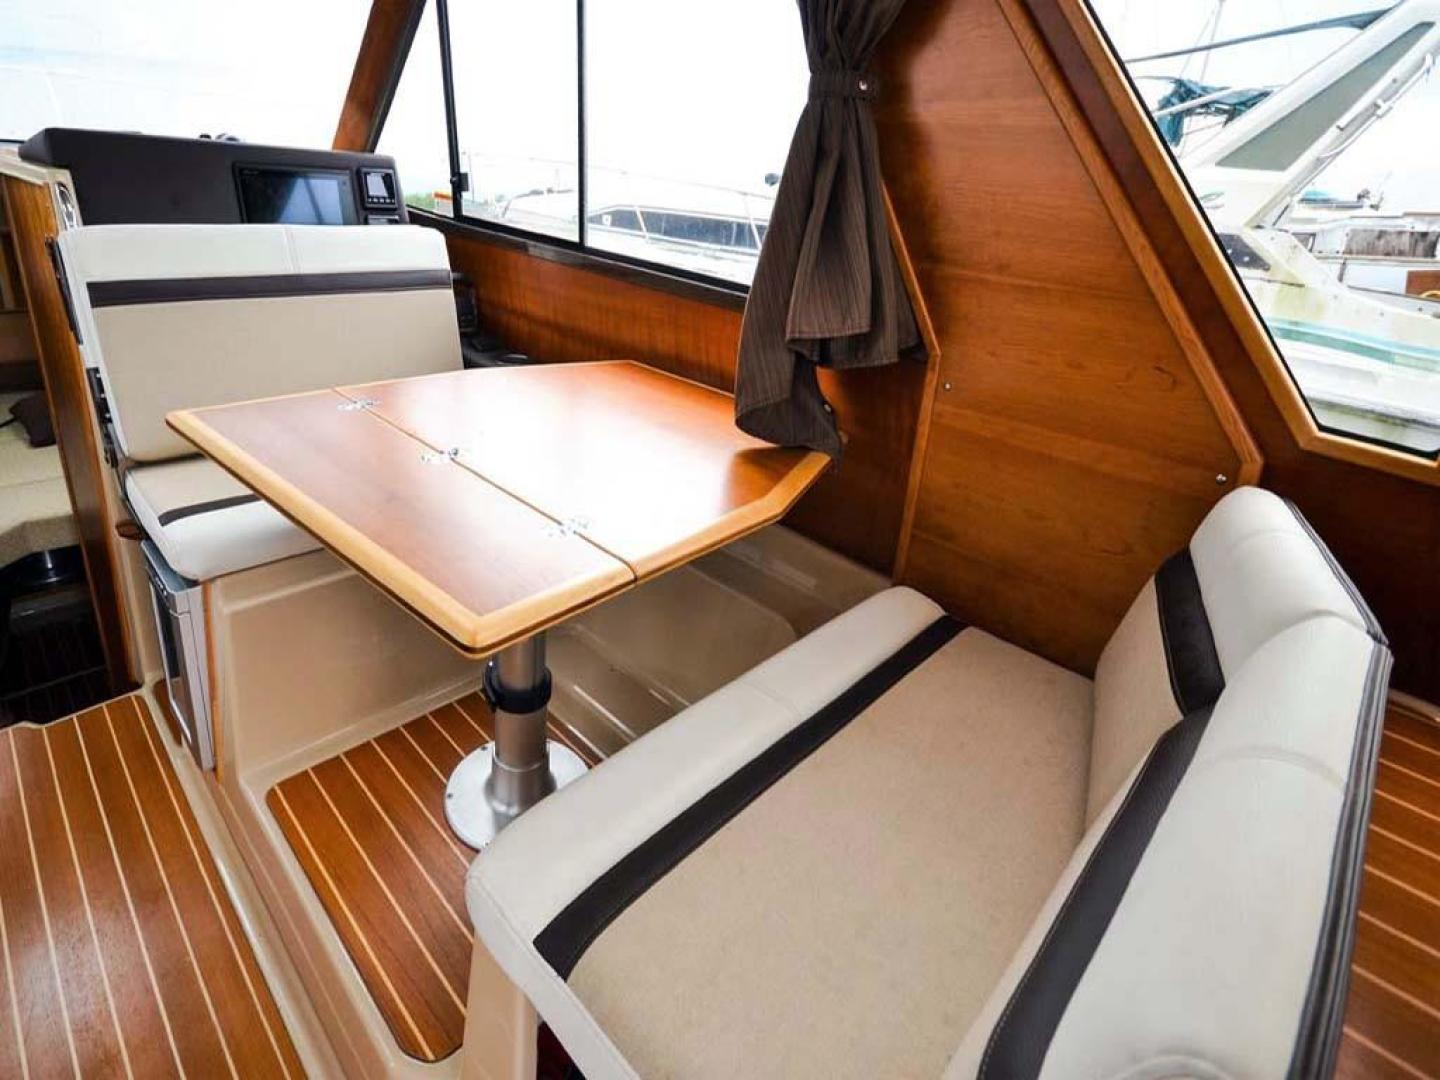 Cutwater-C-28-2018-Blue-Bayou-Stuart-Florida-United-States-Helm-Seat-Reversed-for-Dining-976893